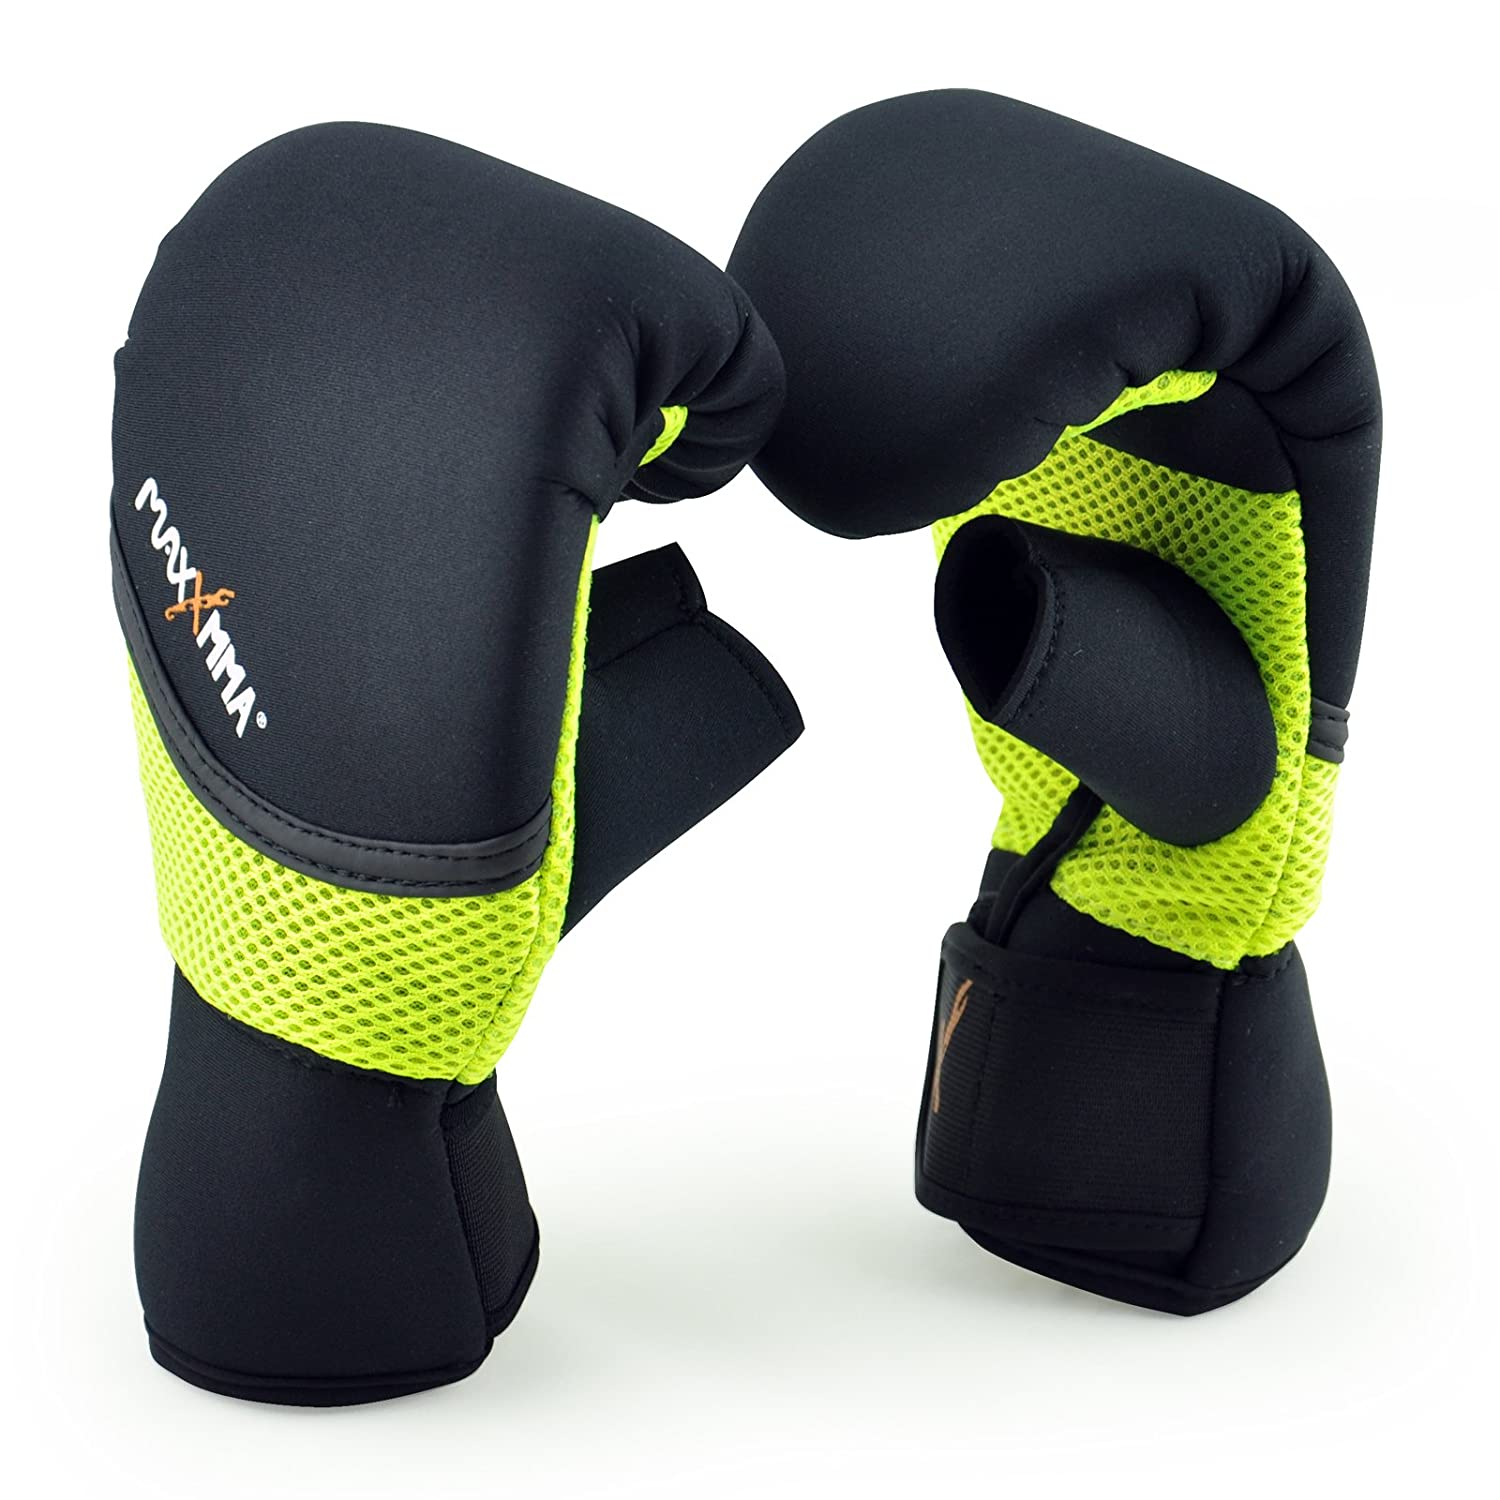 MaxxMMA Neoprene Washable Heavy Bag Gloves - Boxing Punching Training (Neon Yellow, L/XL) LYSB00S05CQRC-SPRTSEQIP